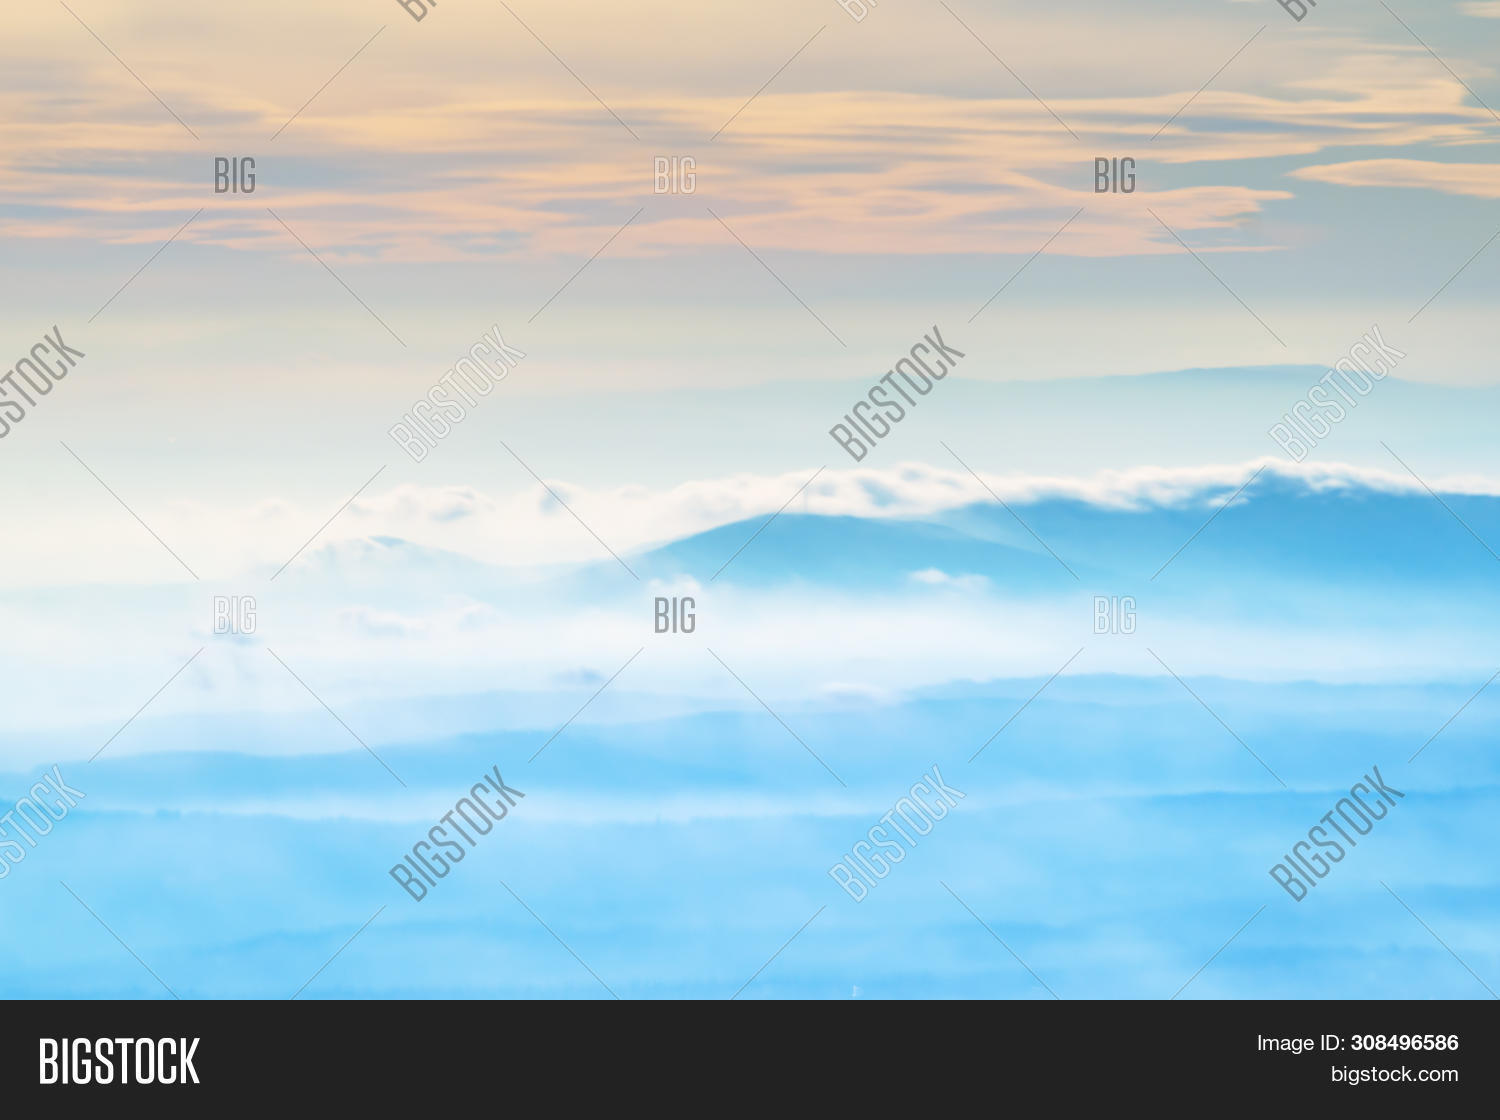 abstract,abstraction,art,artwork,backdrop,background,banner,blue,blur,blurry,bright,clouds,color,colorful,composition,concept,copy,cover,creative,decor,decoration,design,desktop,focus,fog,for,glow,graphic,landscaped,light,luxury,magical,mountains,natural,nature,shape,shine,shiny,sky,soft,softness,space,style,template,text,texture,white